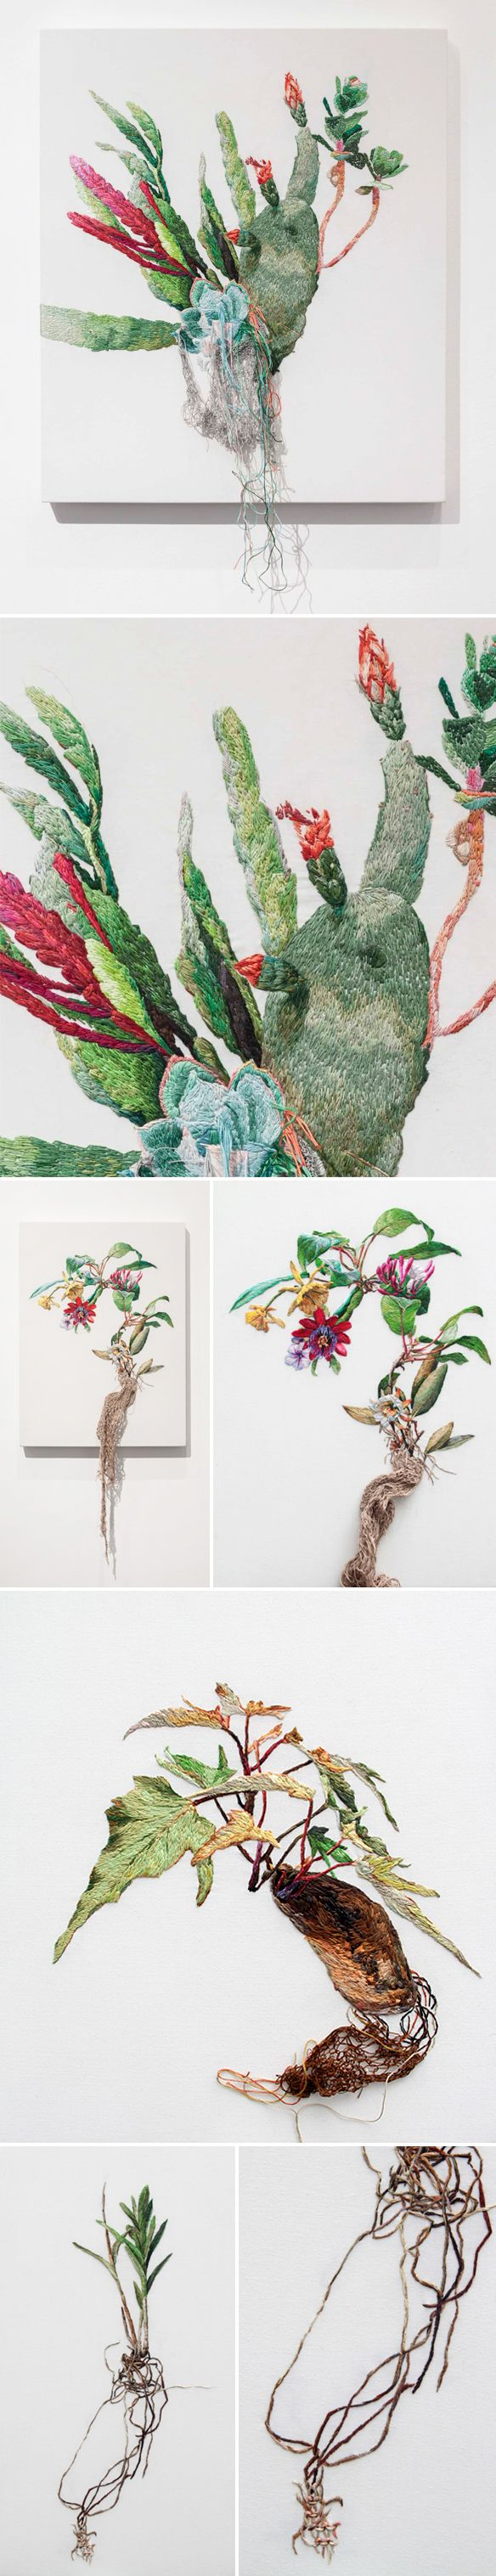 embroidery by ana teresa barboza <3